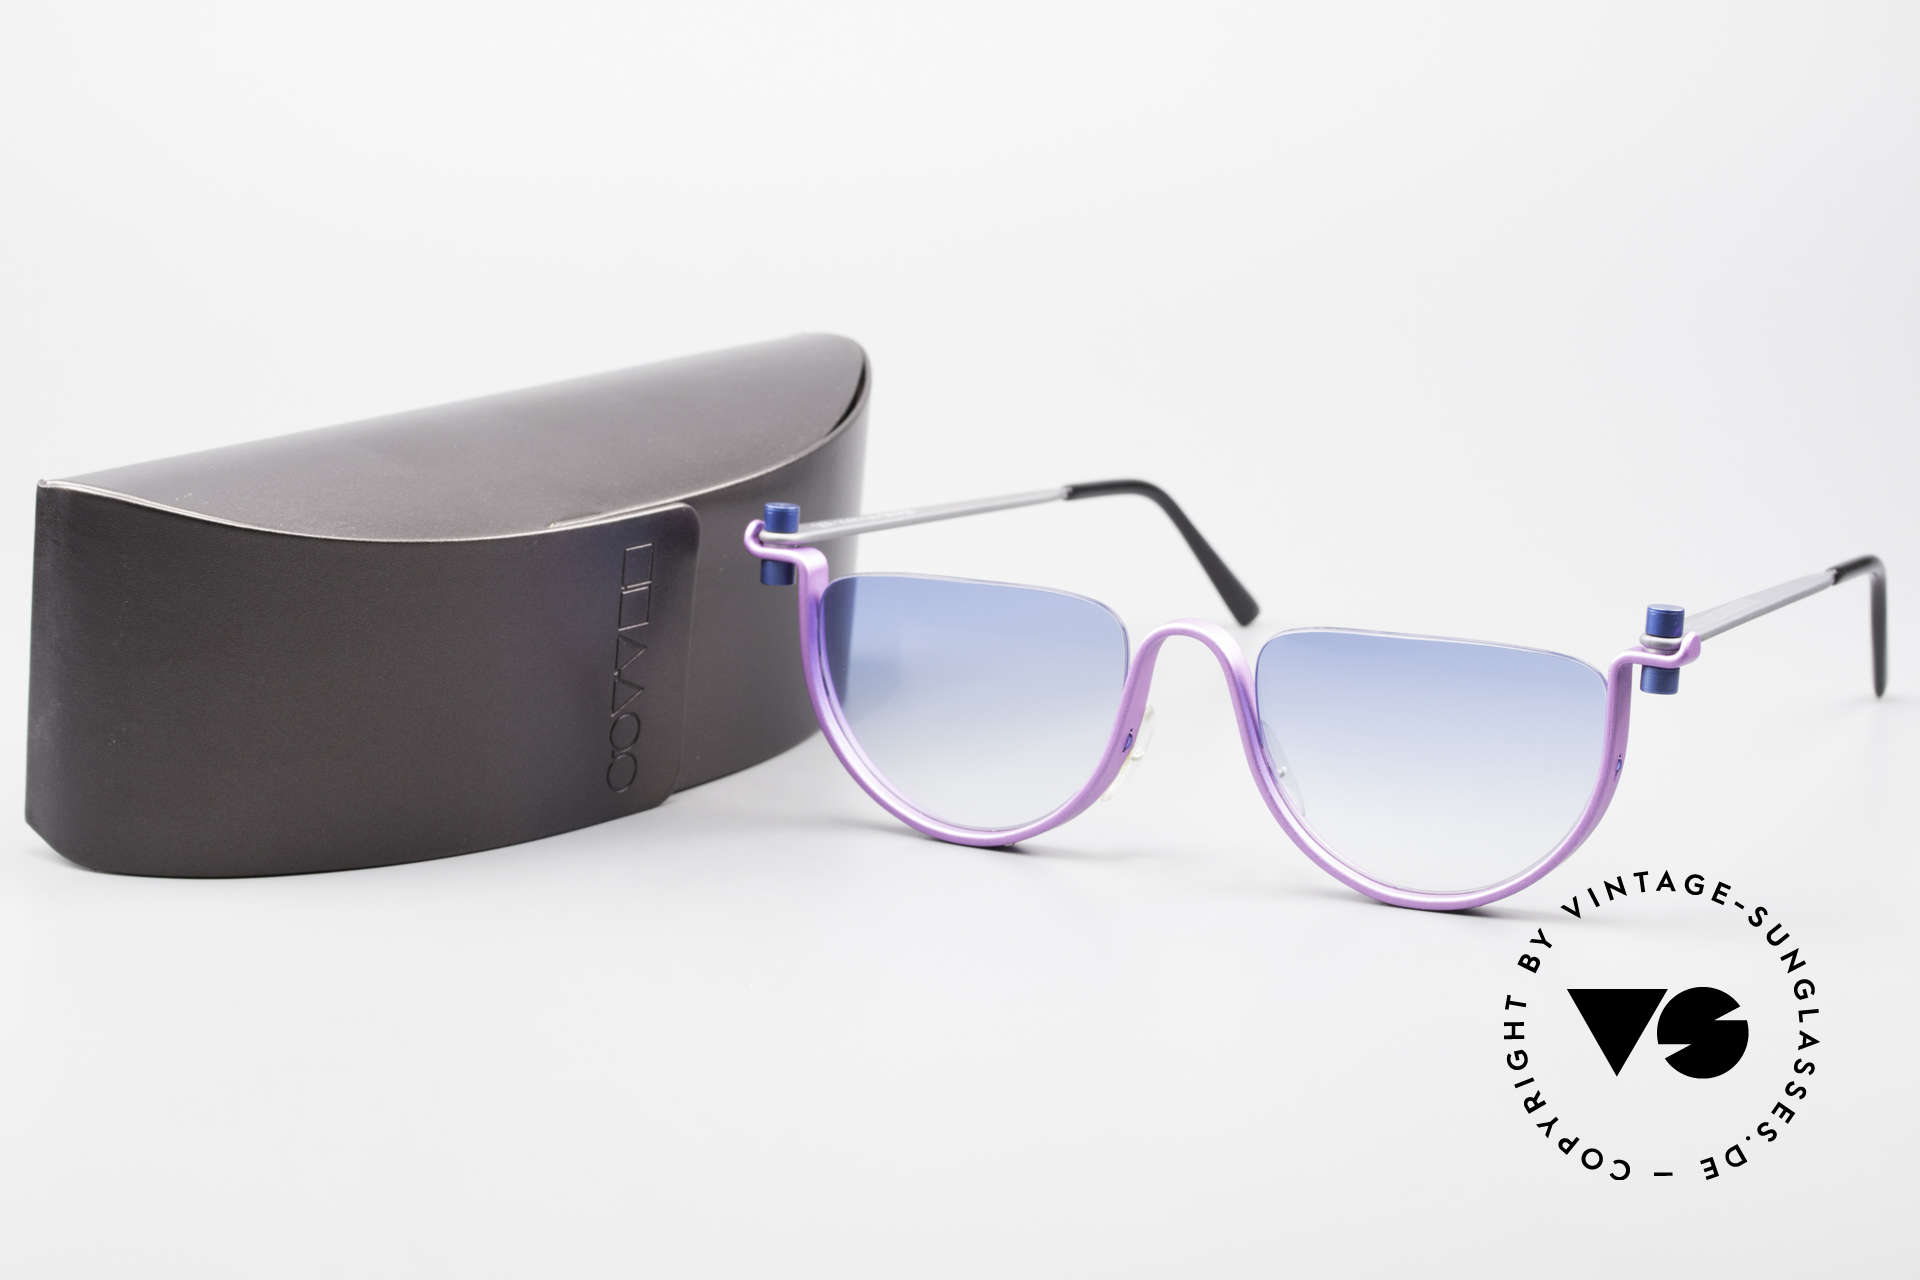 ProDesign No2 Rare Vintage Movie Shades 90's, Size: large, Made for Men and Women